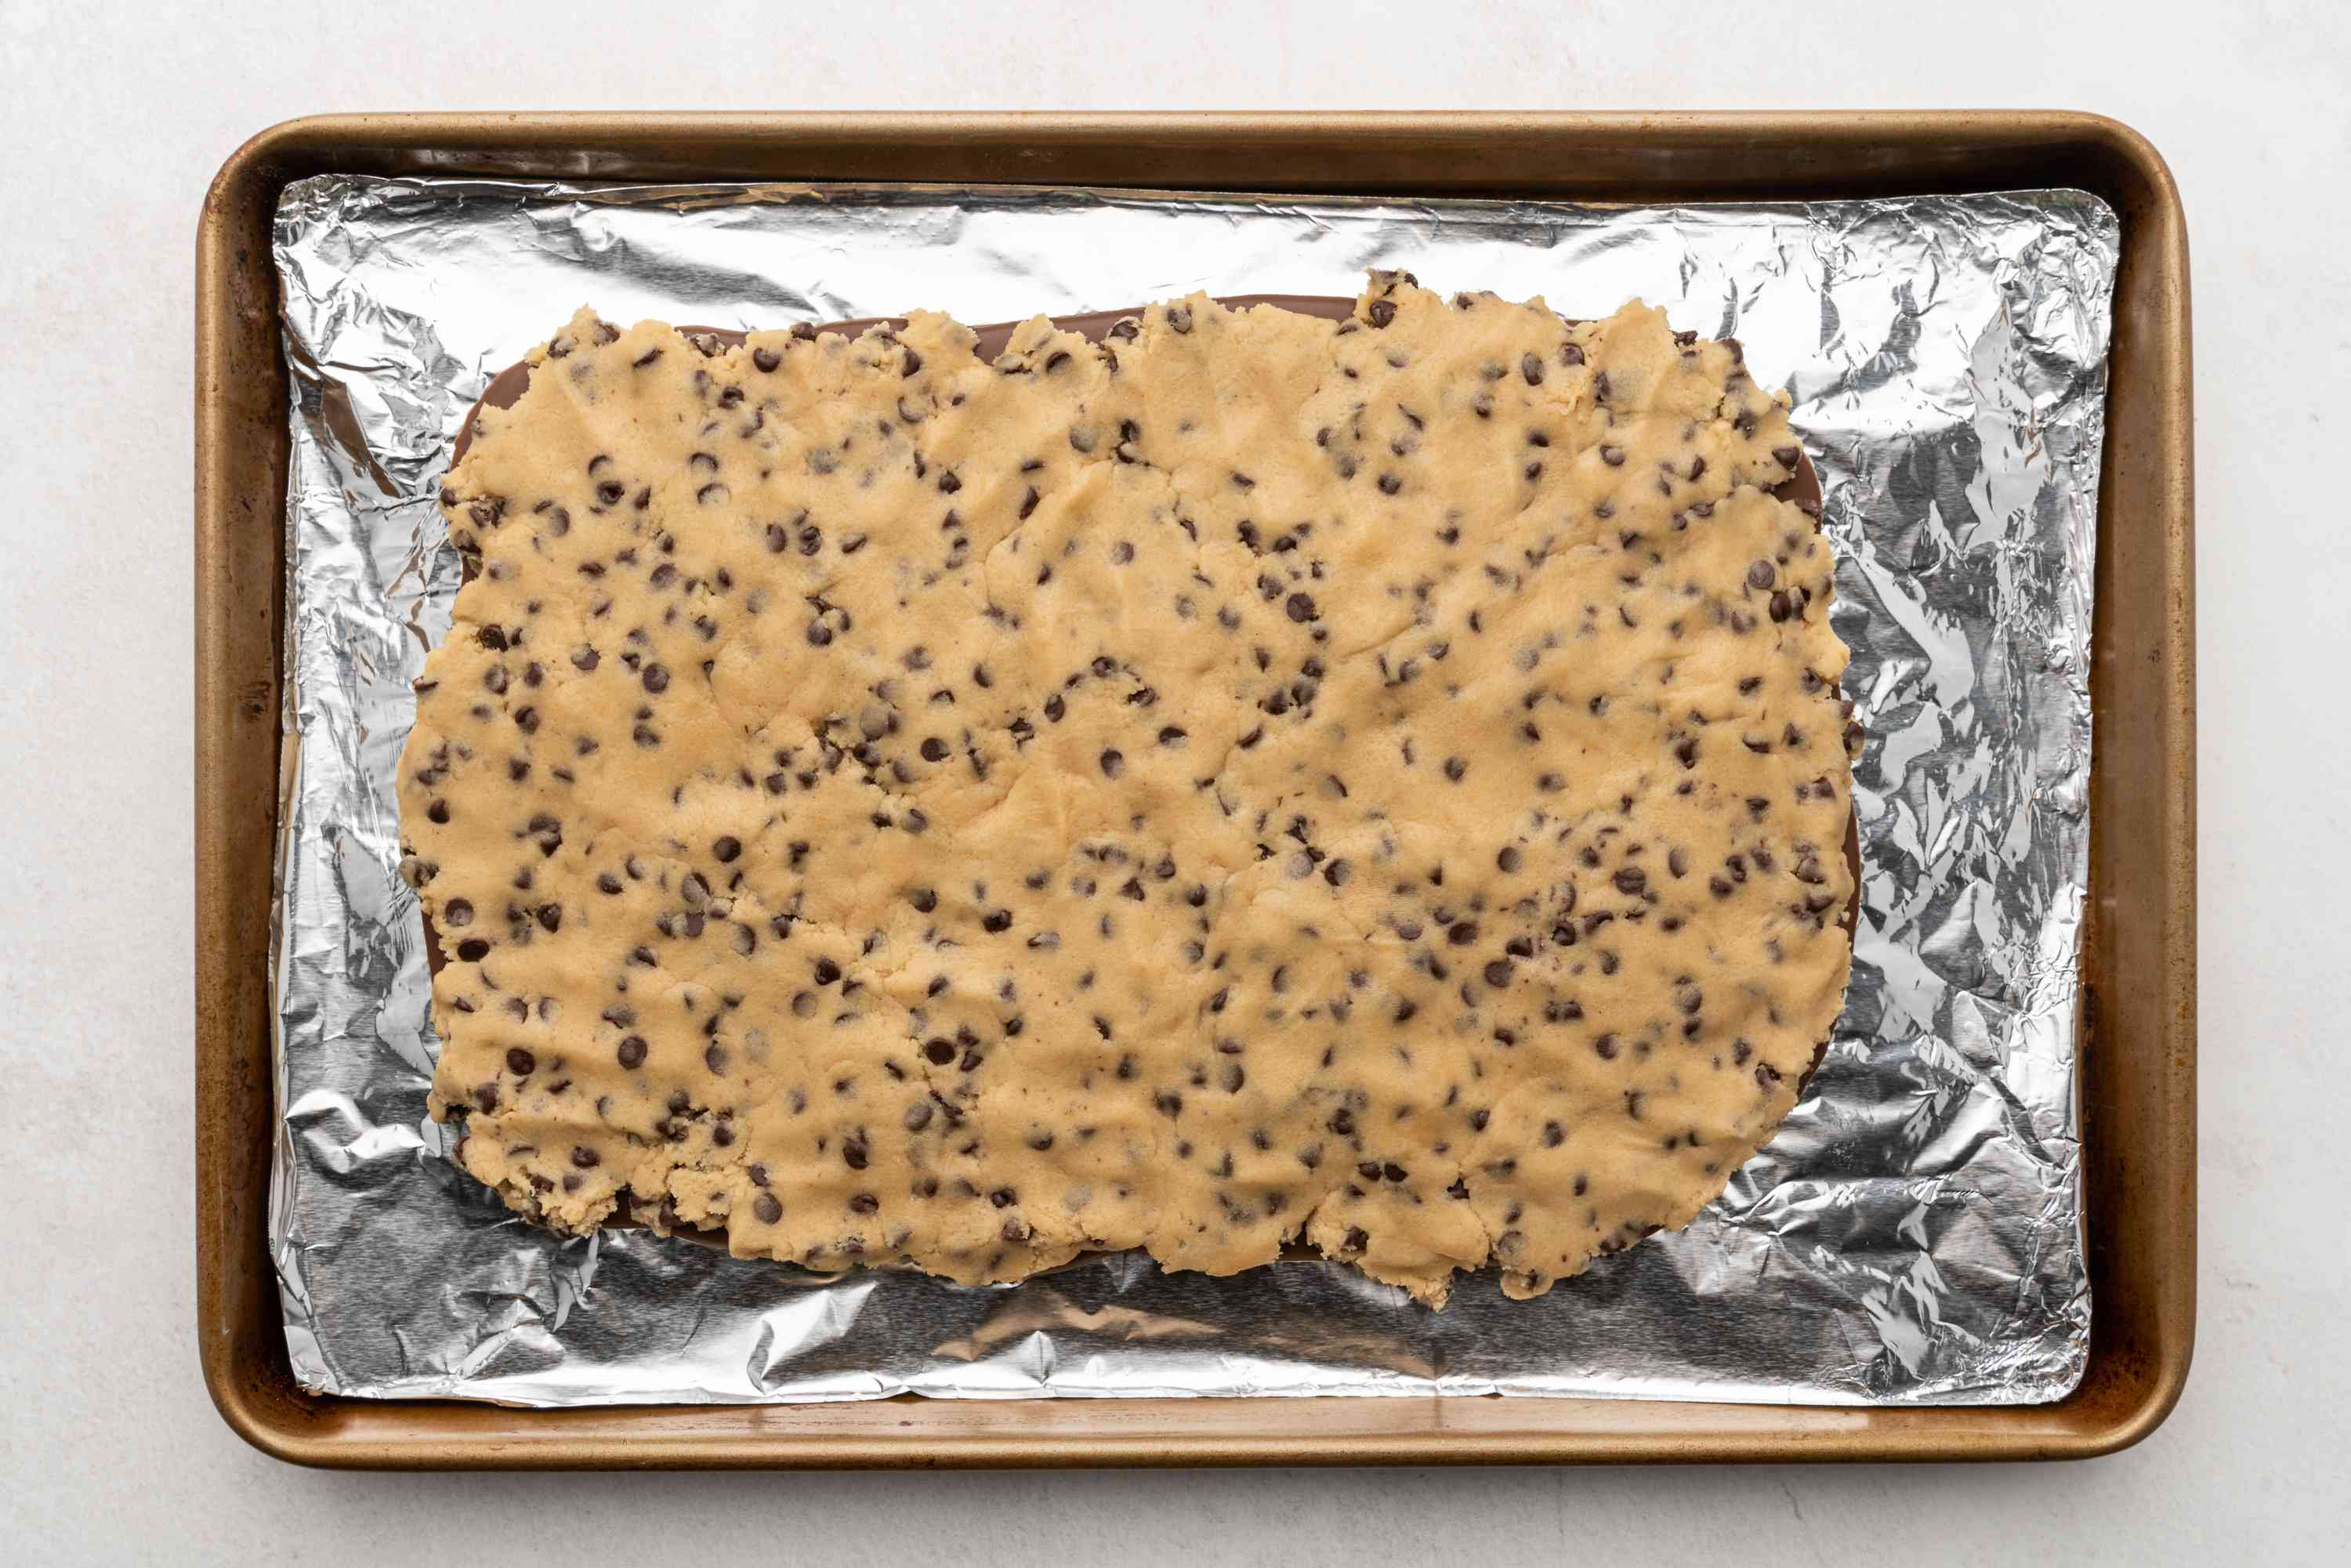 dough on top of the chocolate on a baking sheet